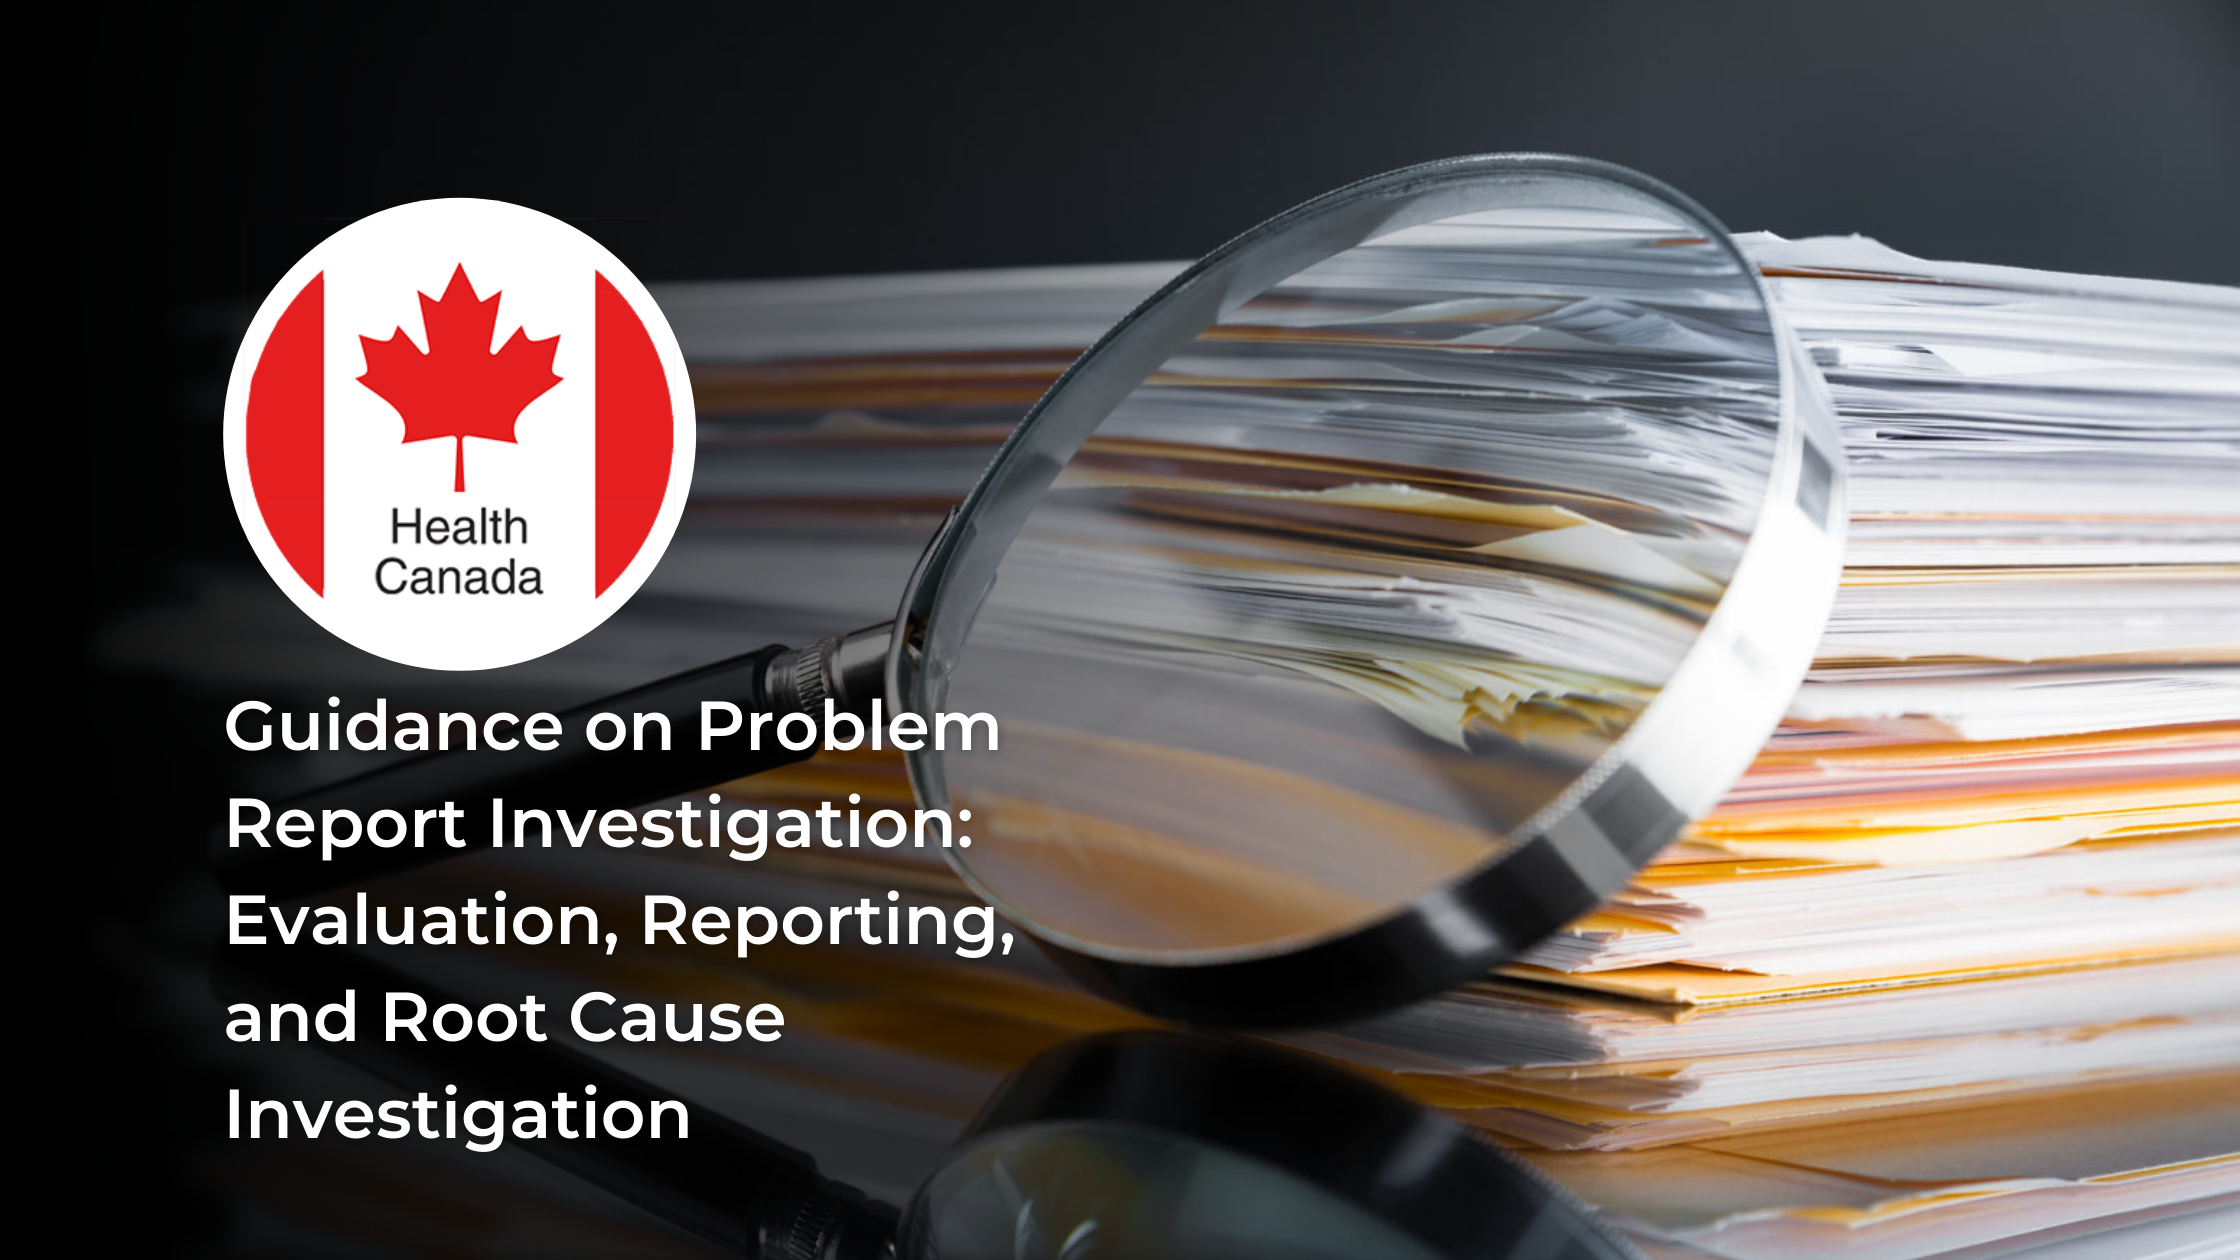 Health Canada Guidance on Problem Report Investigation: Evaluation, Reporting, and Root Cause Investigation